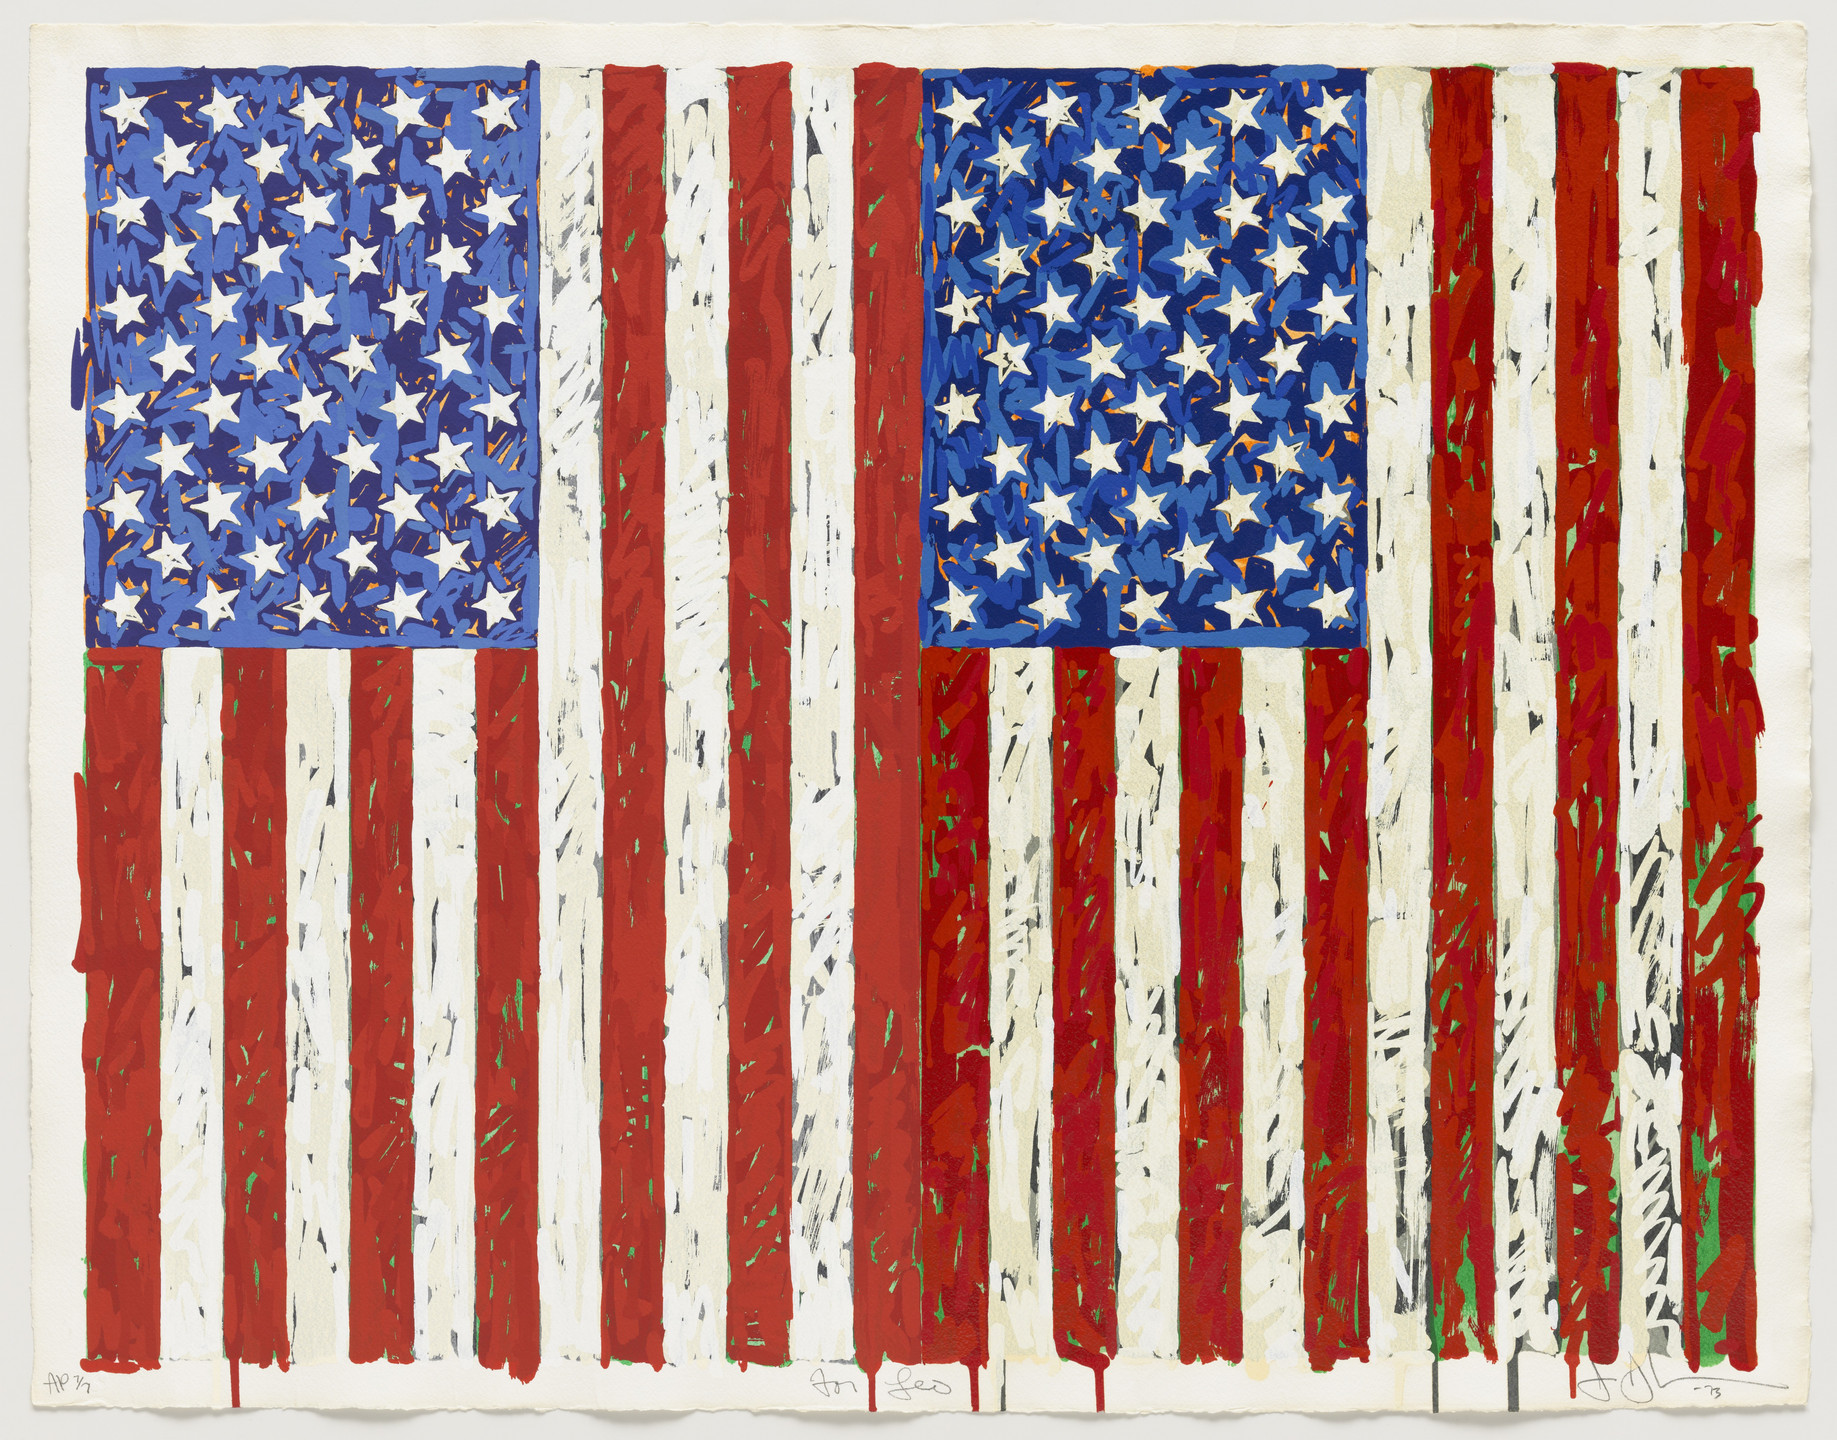 Jasper Johns. Flags I. 1973